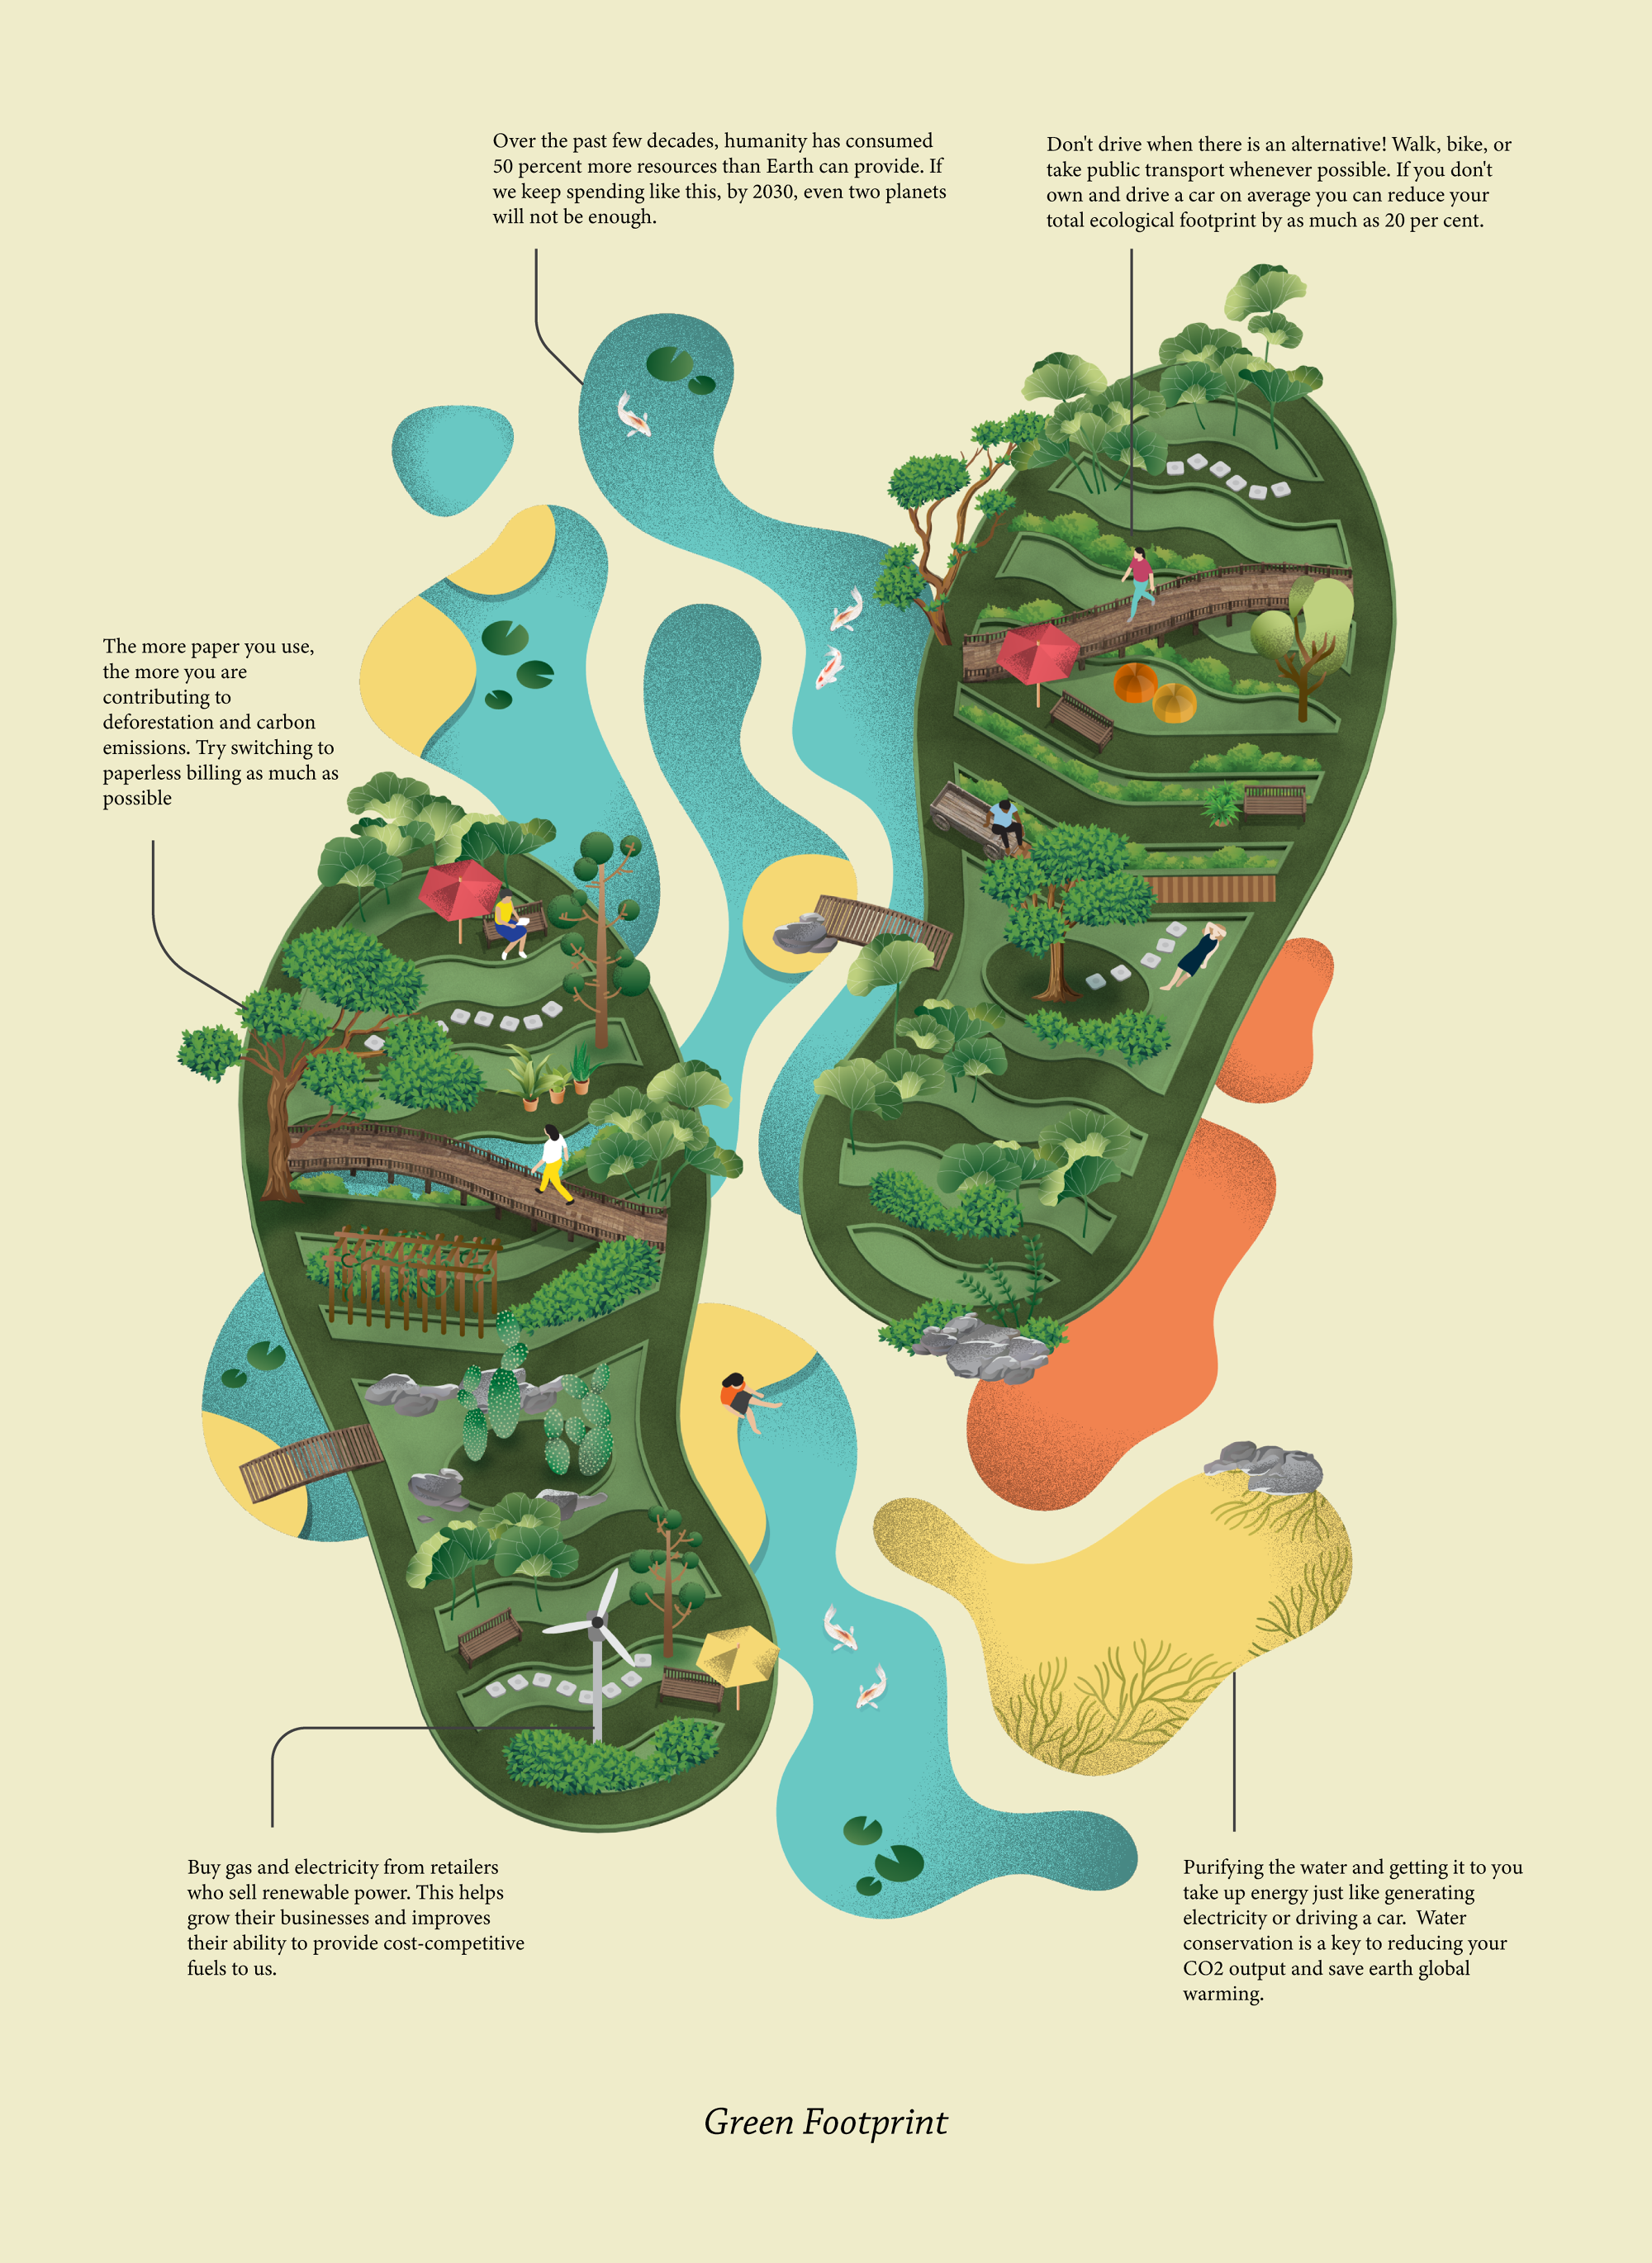 illustrated image of two footprints in green along with lots of trees and other greenery inside them to symbolize environmental footprint, along with factual text along the sides